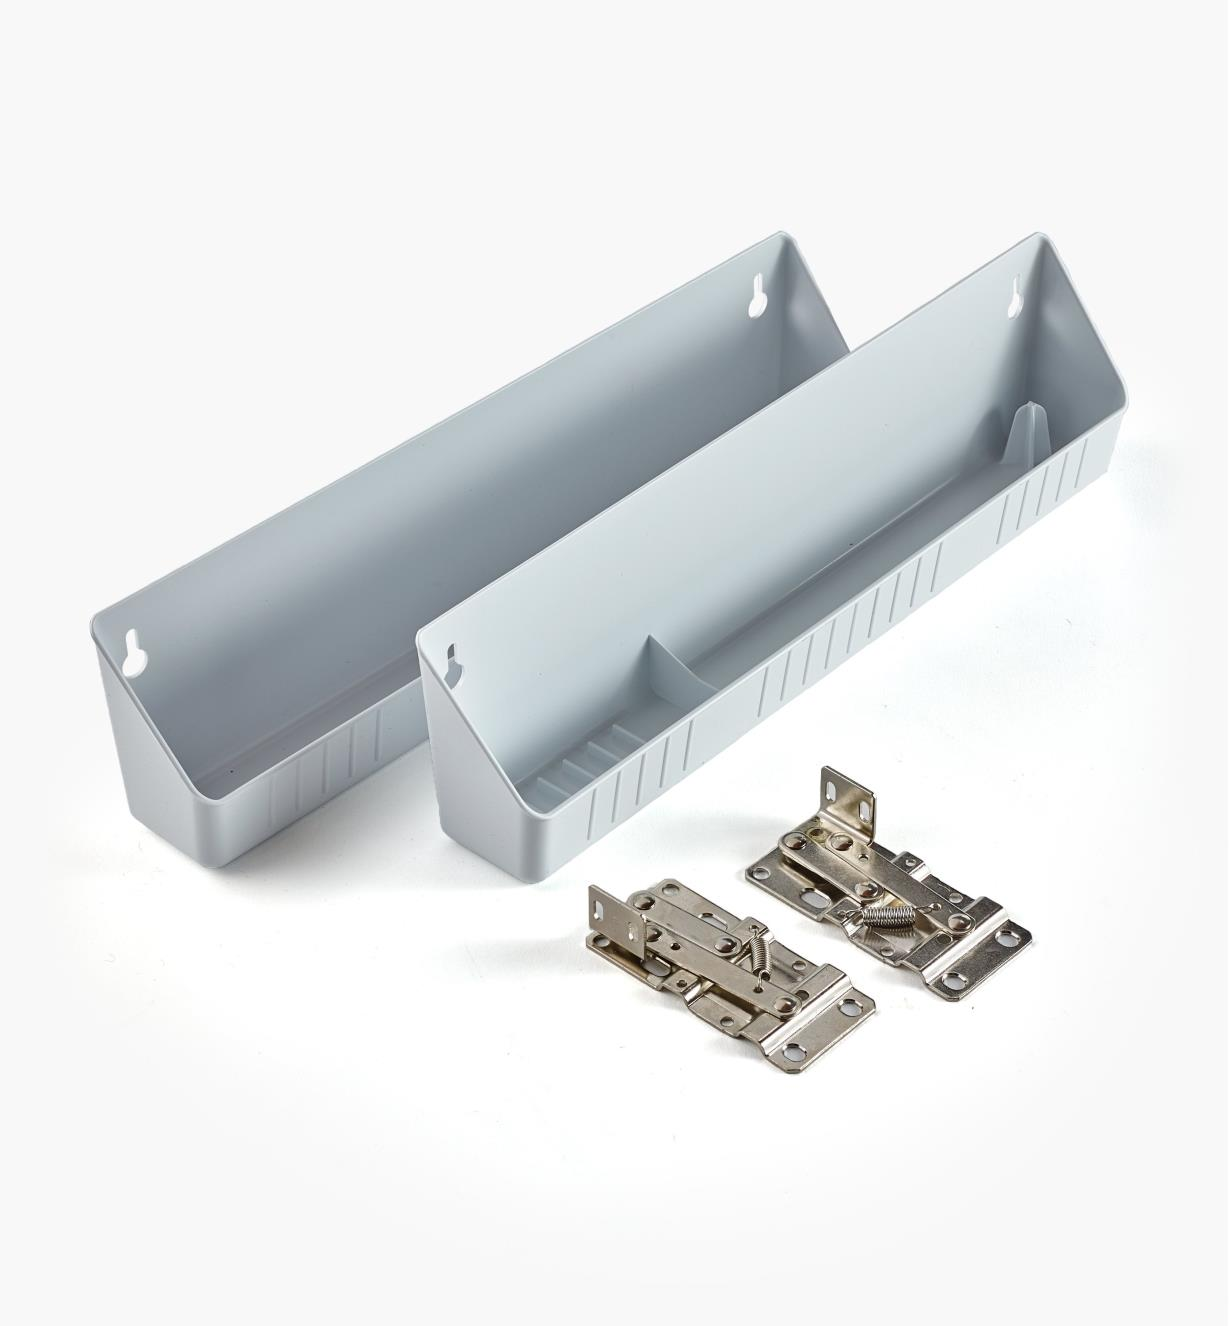 12K7601 - Set of 2 Trays + 1 pr. Hinges